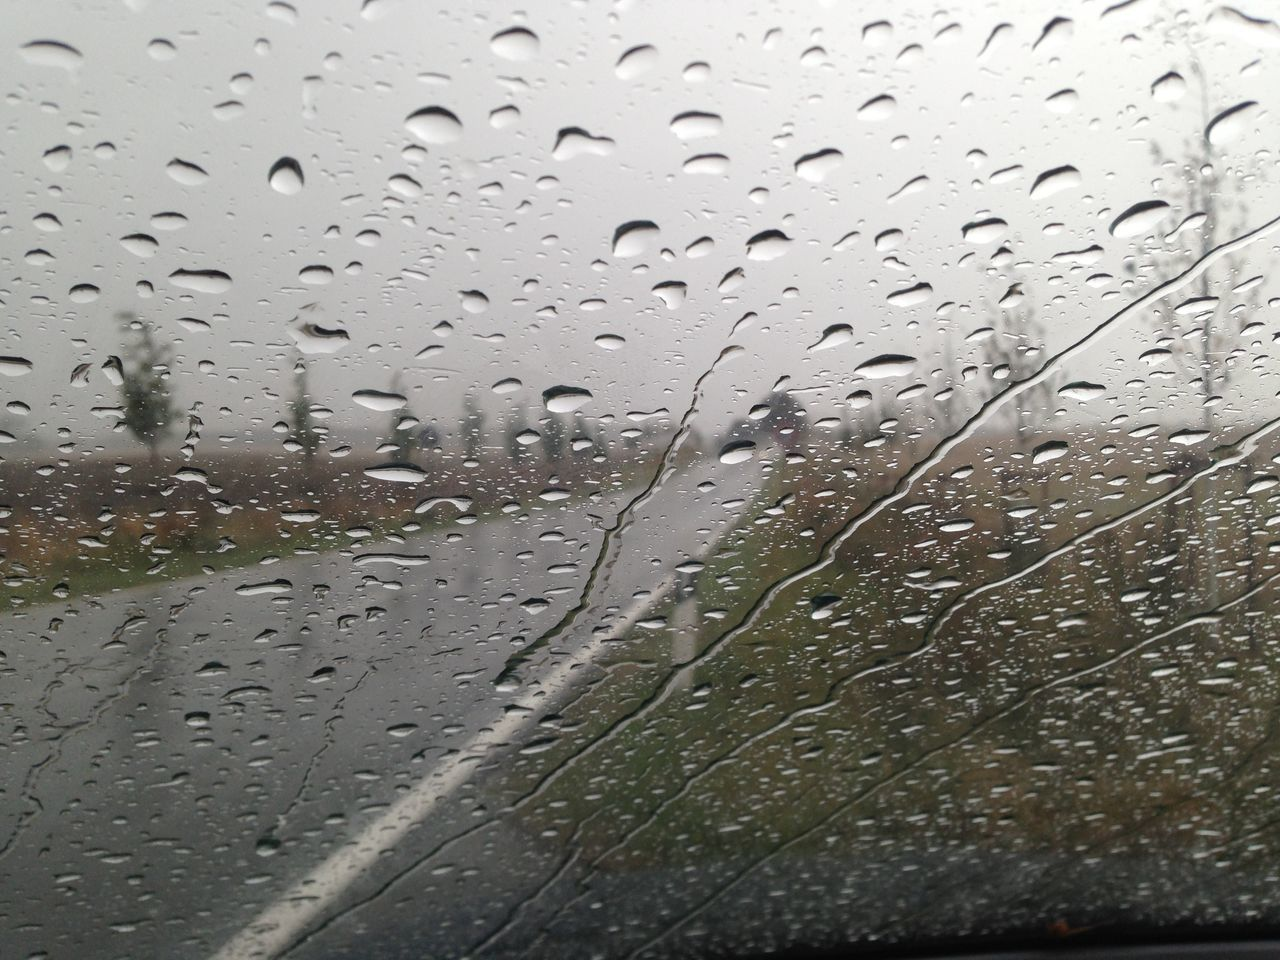 Aquaplaning Bad Visibility Car Window Drawing No People Pouring Rain Rainy Relaxing Streeetphotography Water Wet Window Windshield